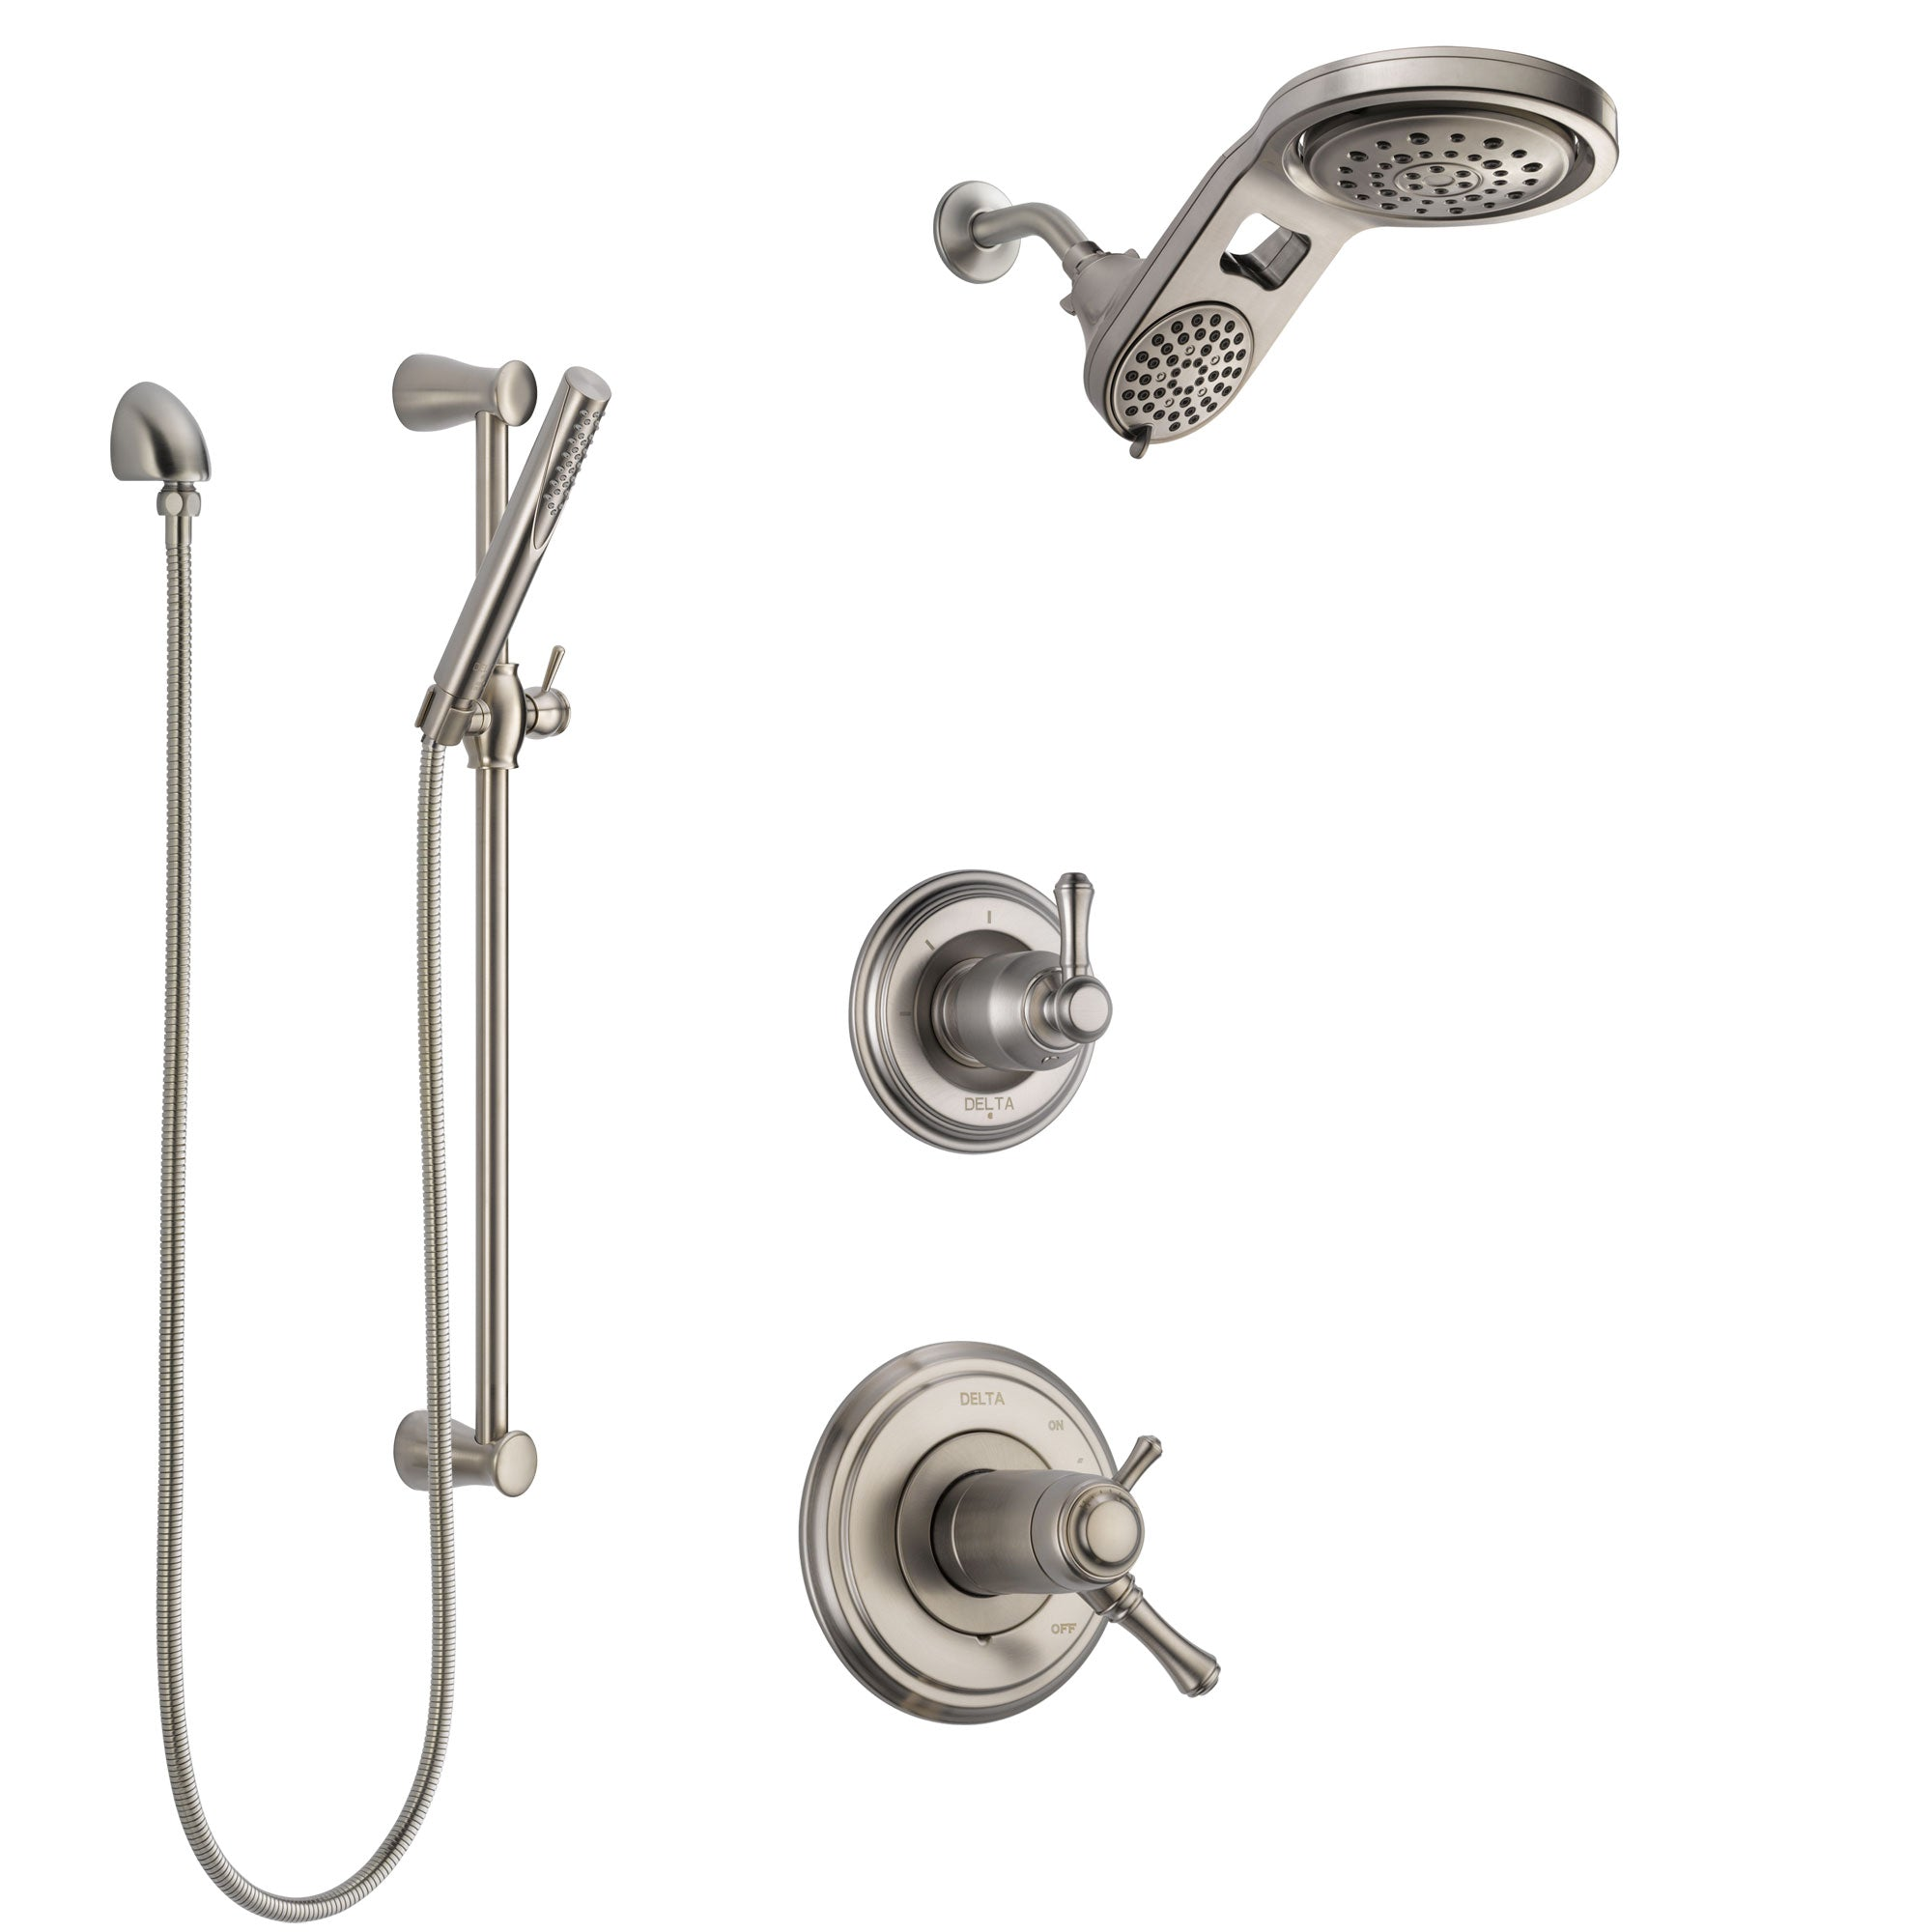 Delta Cassidy Dual Thermostatic Control Handle Stainless Steel Finish Shower System, Diverter, Dual Showerhead, and Hand Shower SS17T972SS8